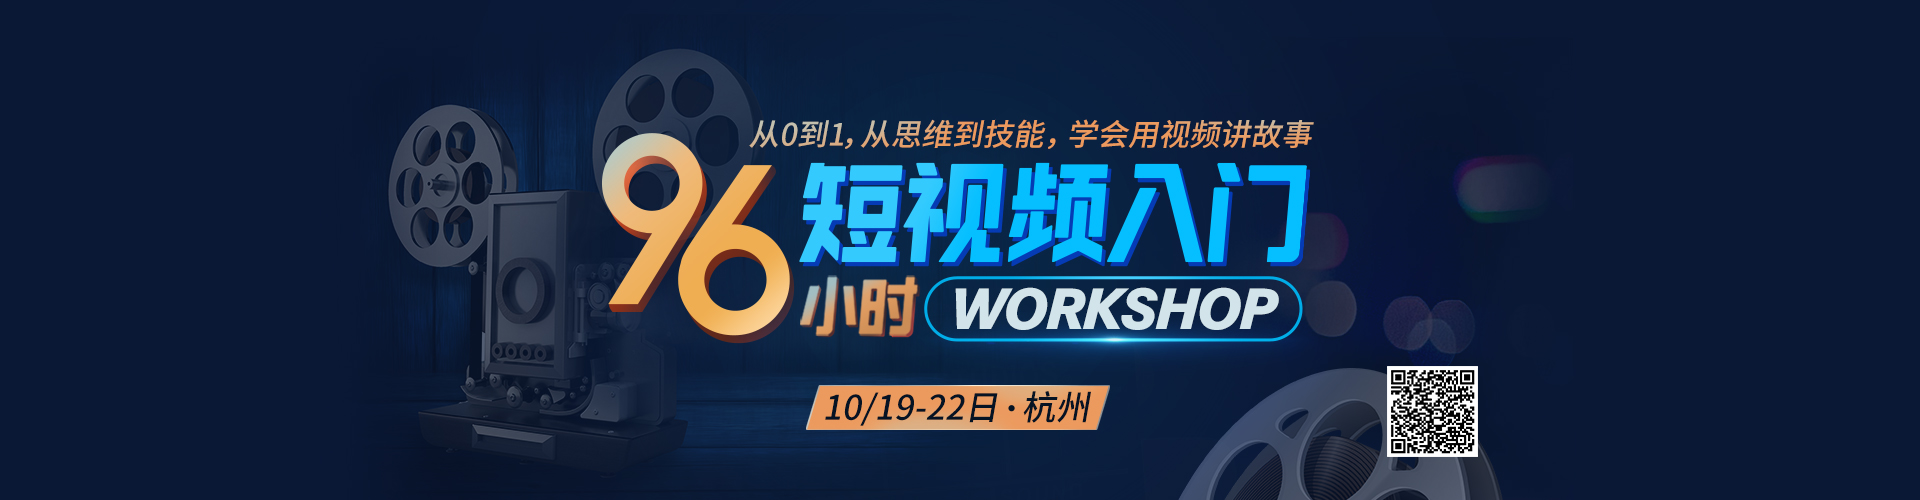 短視頻入門96小時workshop